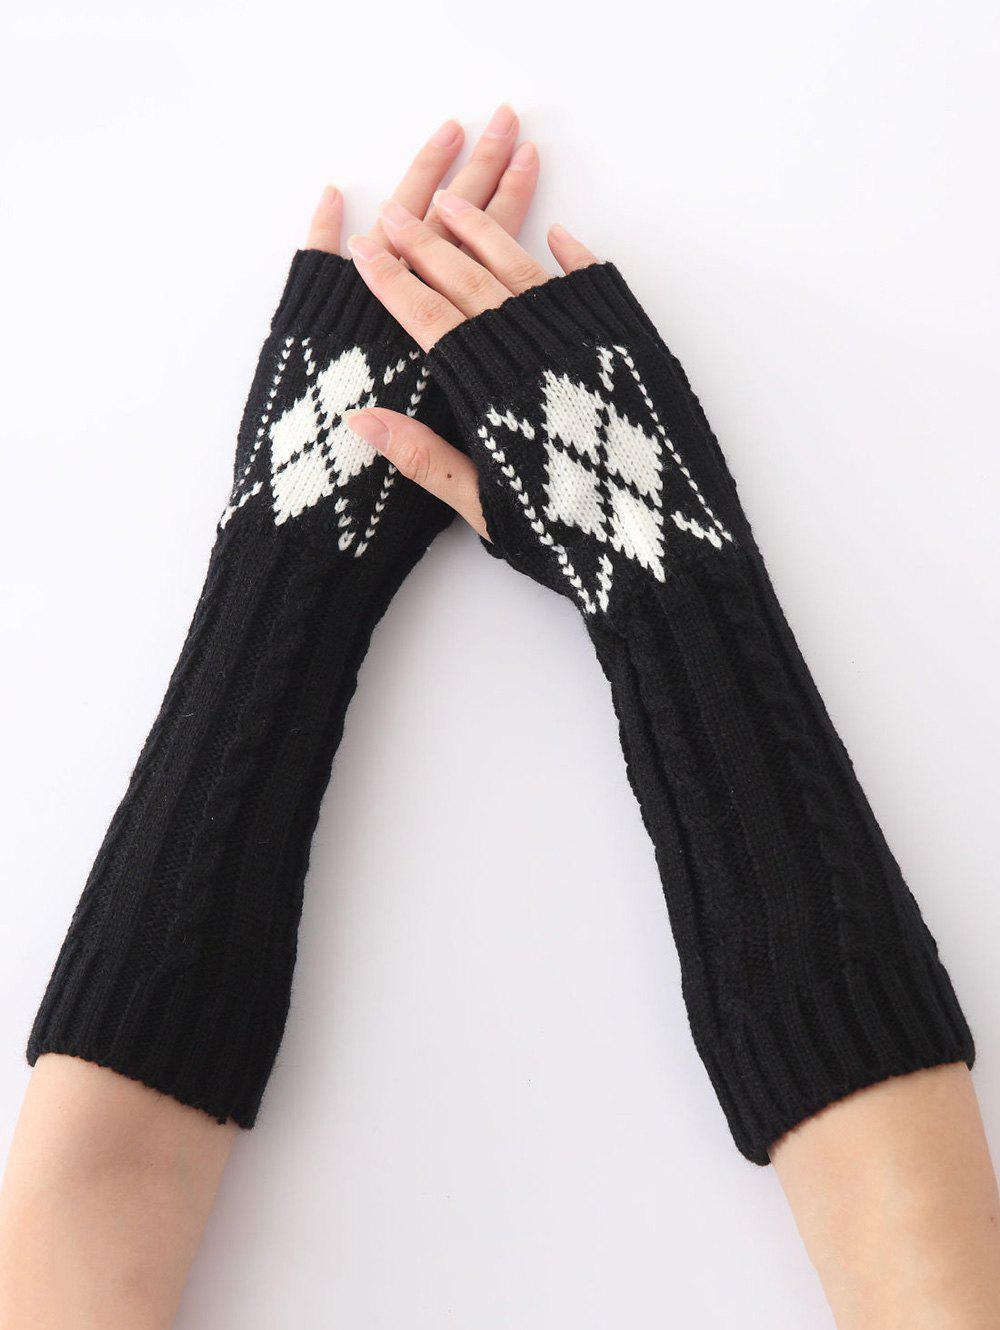 Christmas Winter Warm Hemp Decorative Pattern Diamond Crochet Knit Arm Warmers - BLACK